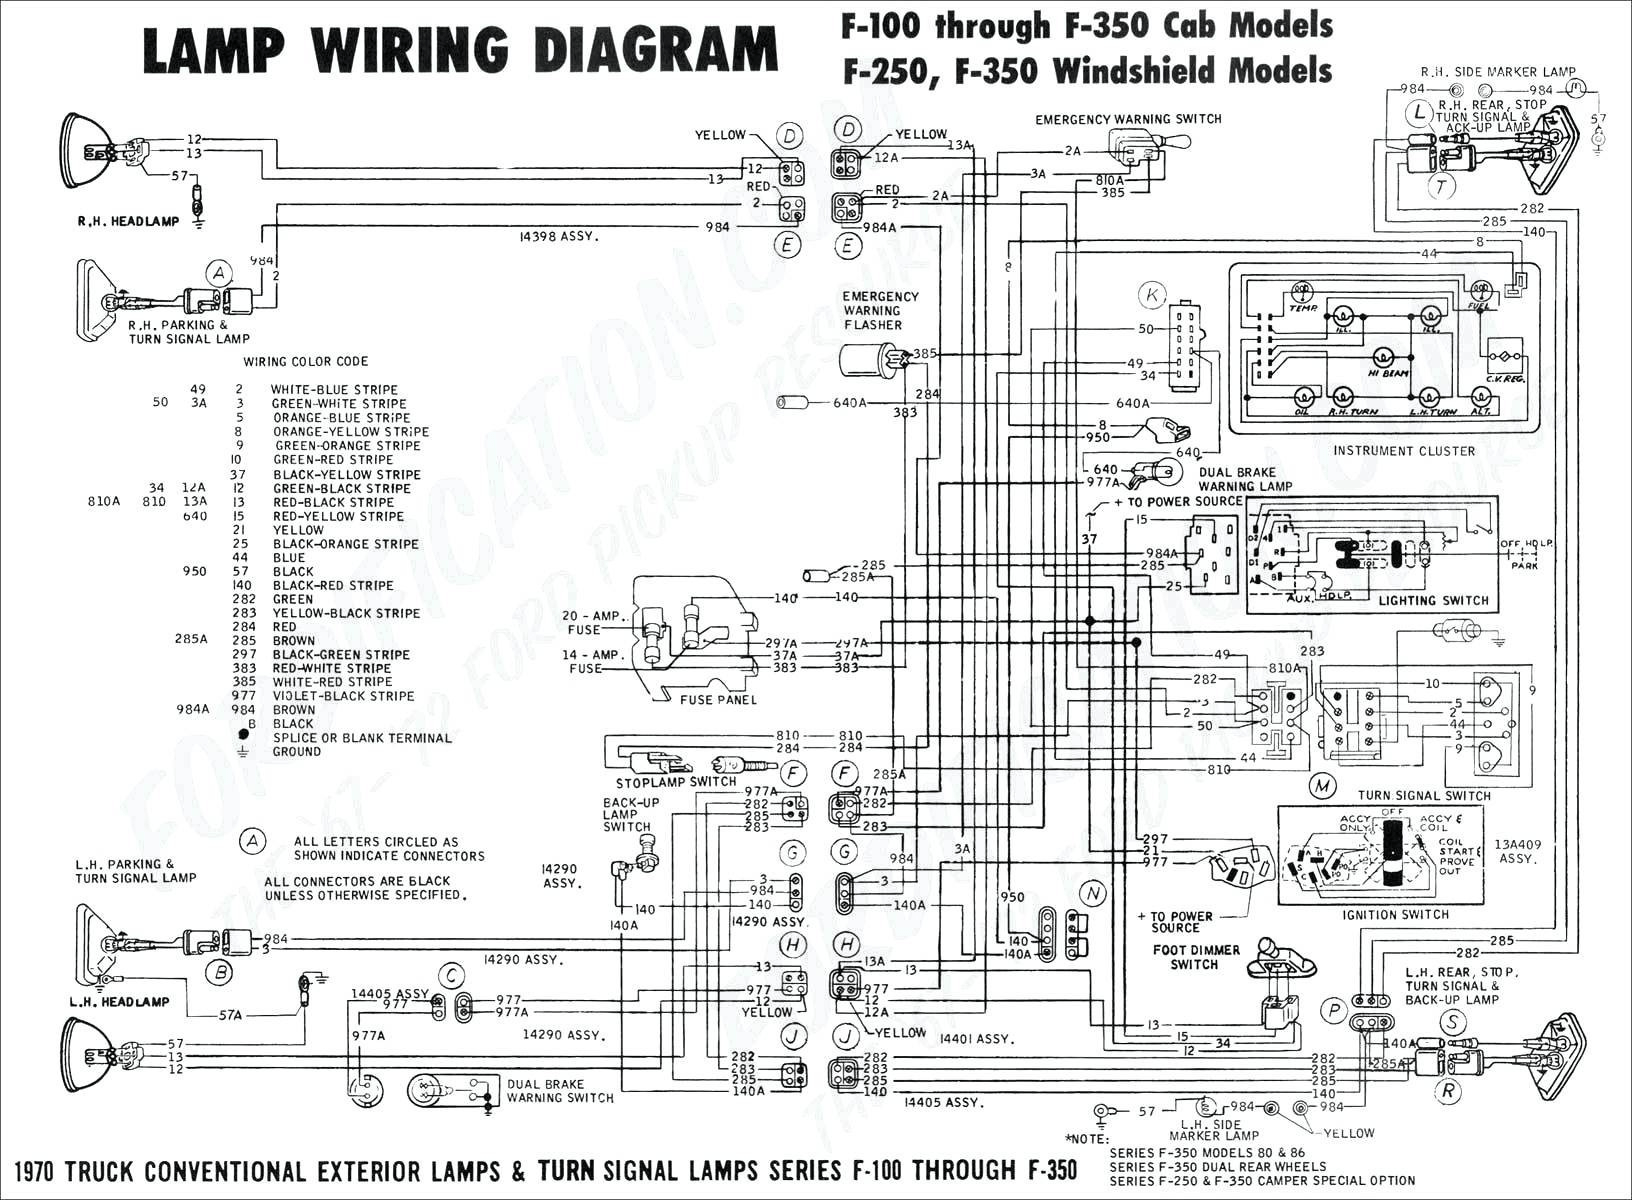 hight resolution of 2003 chevy impala fuse diagram 1987 nissan z24 vacuum diagram cat c7 wiring diagram for 1997